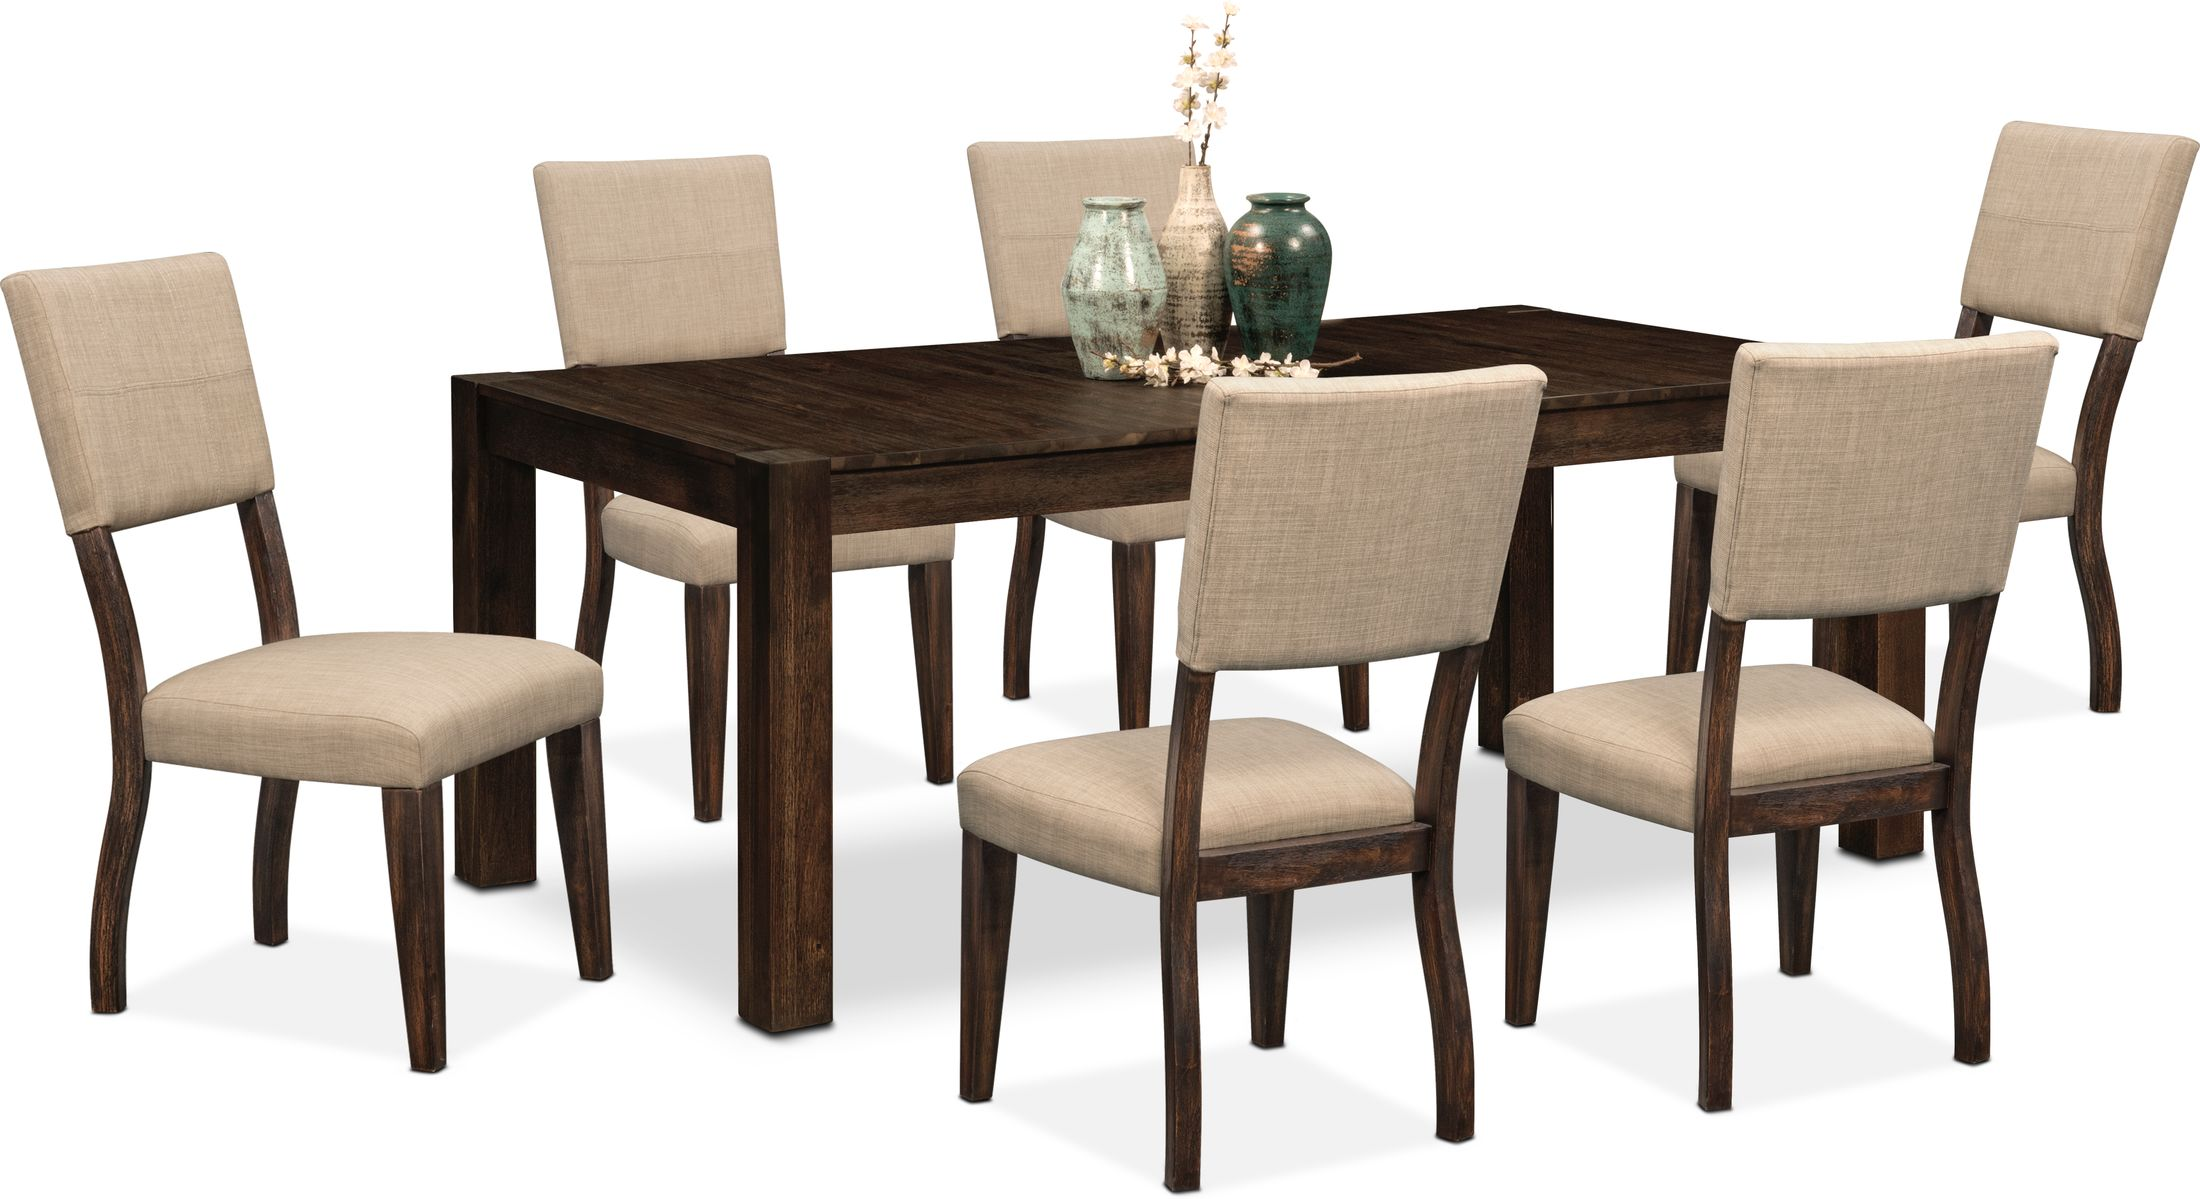 Tribeca Dining Table And 6 Upholstered Dining Chairs Value City Furniture